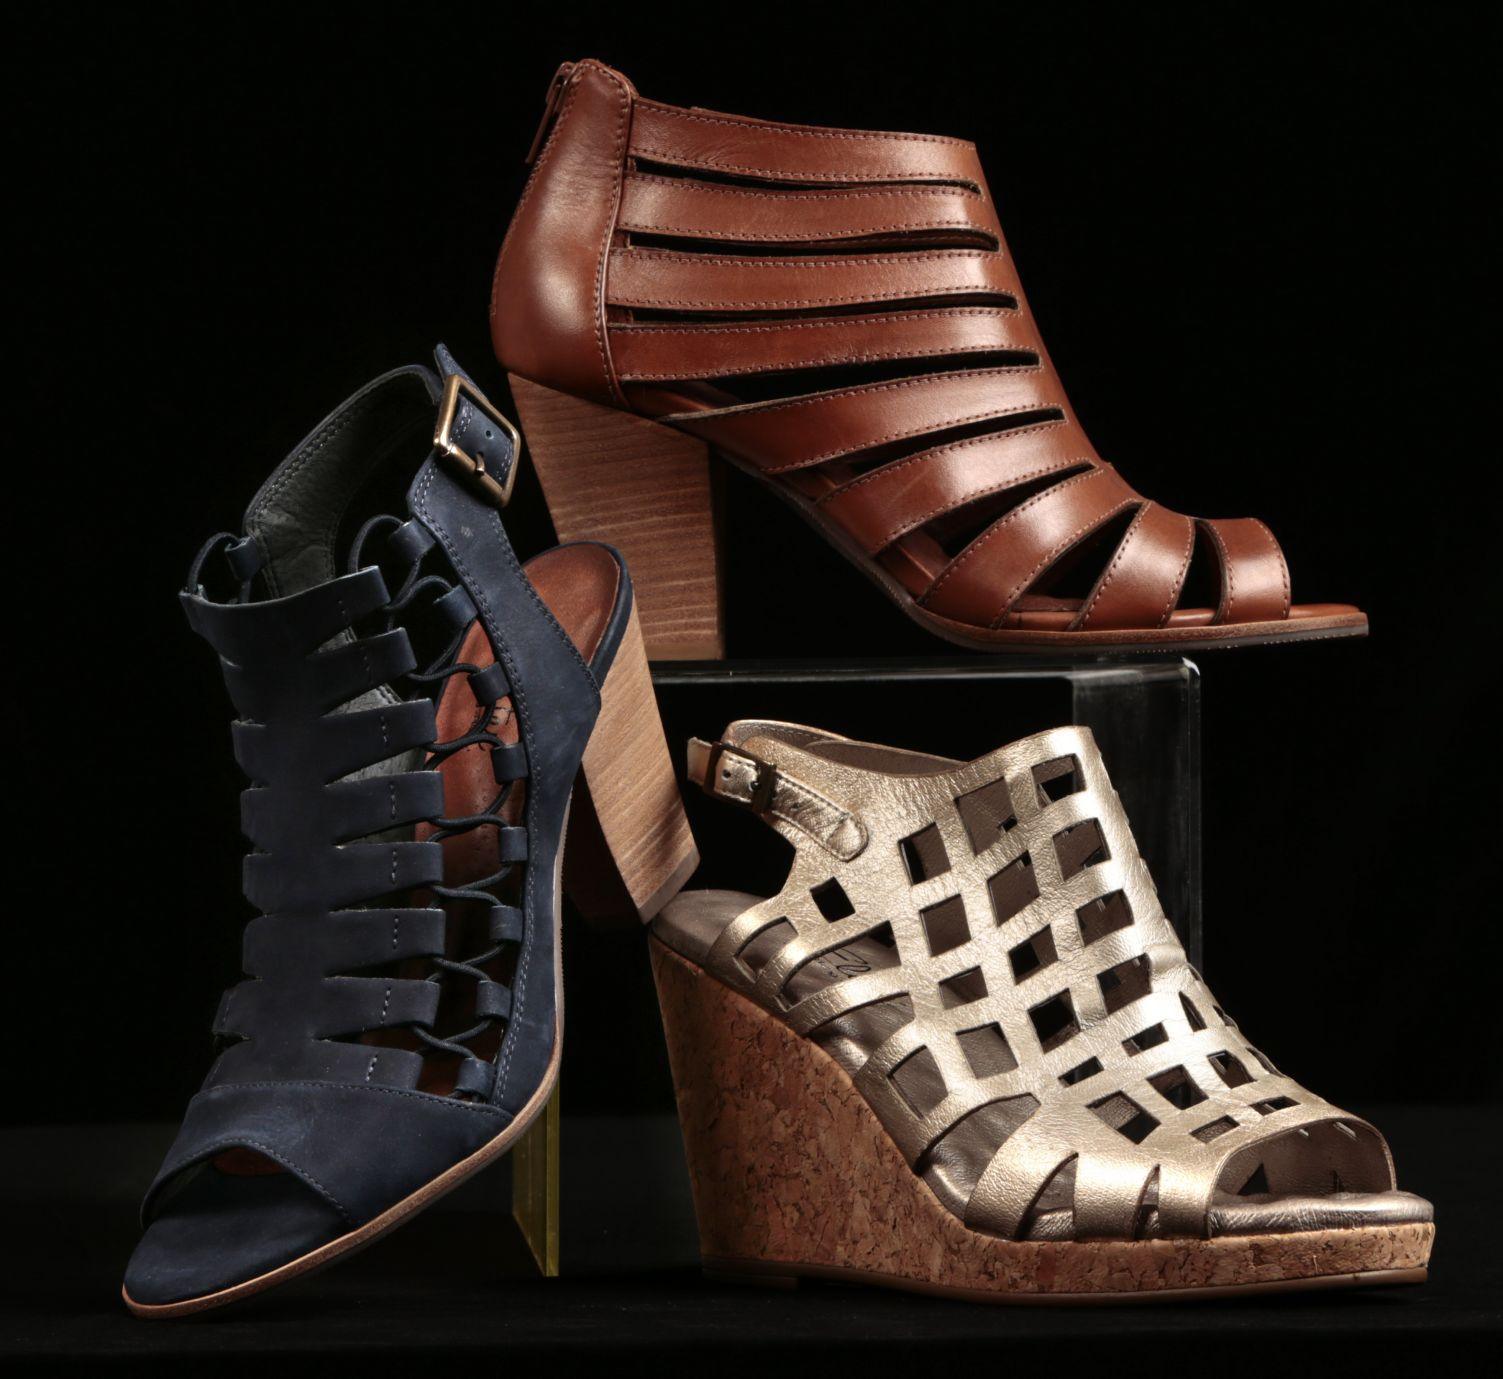 Made in St. Louis: Fenton shoe company